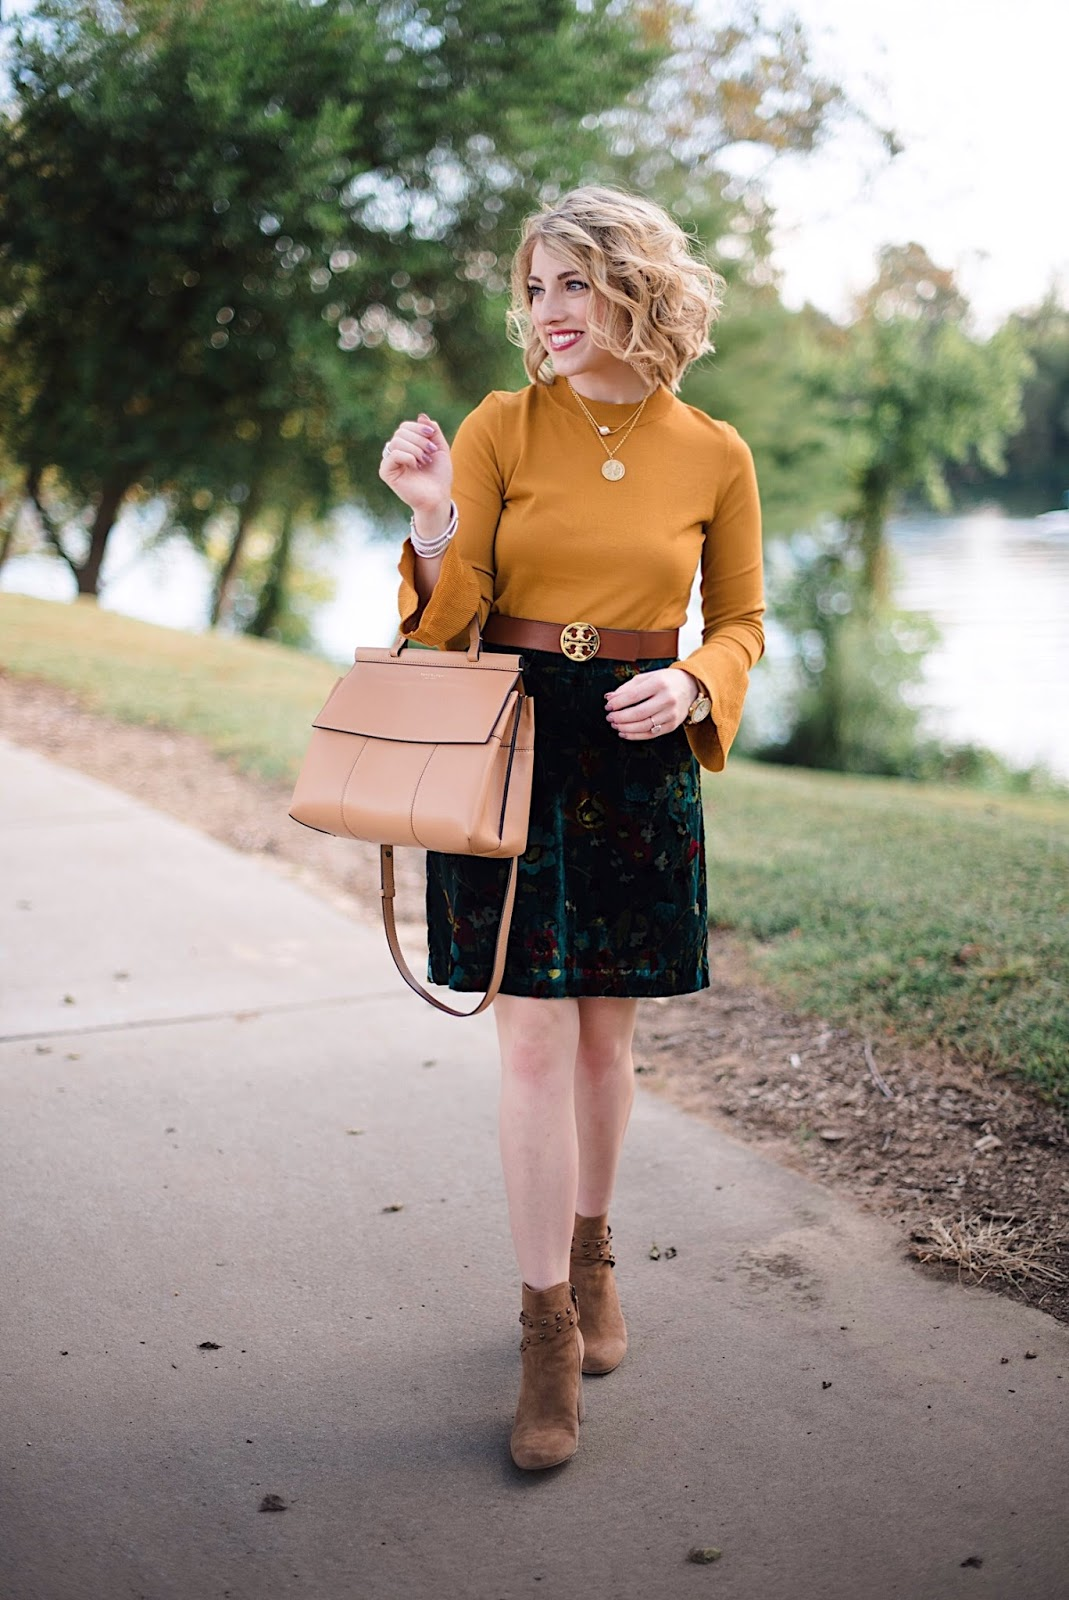 Velvet Skirt & Mustard Yellow Bell Sleeve Sweater - Something Delightful